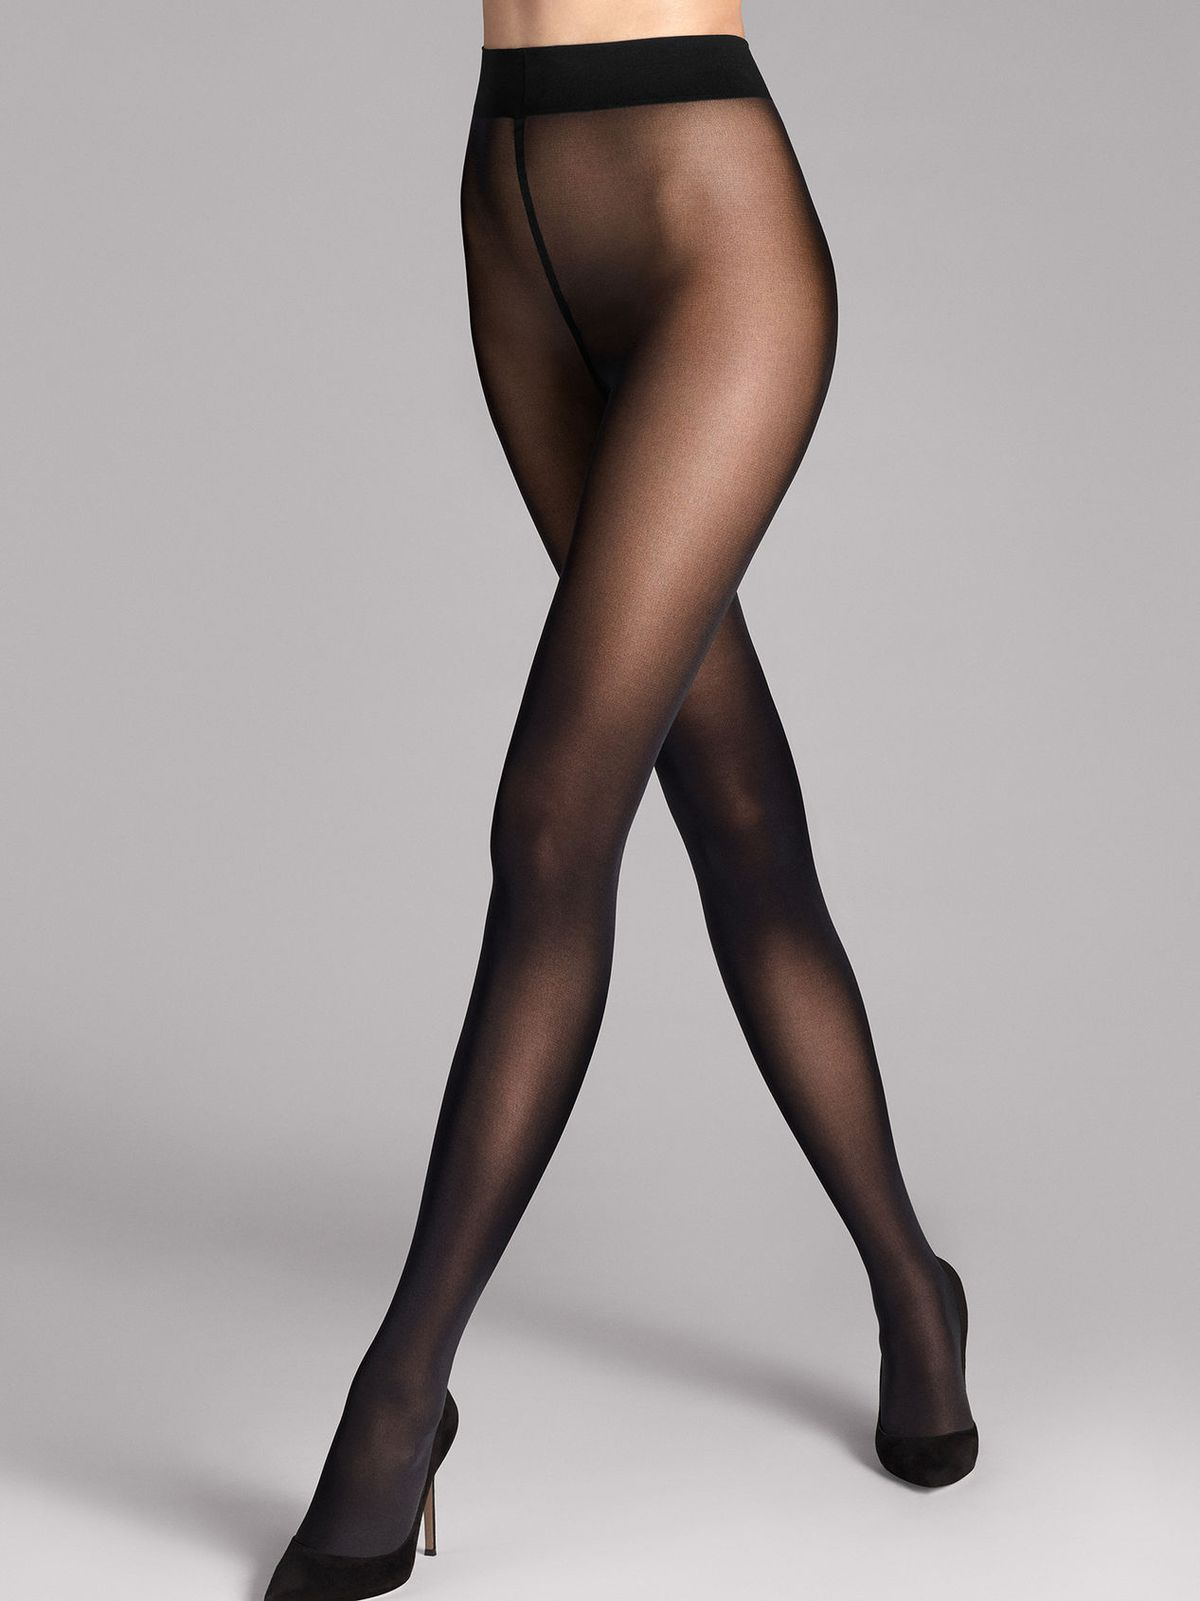 changed-into-a-pair-of-pantyhose